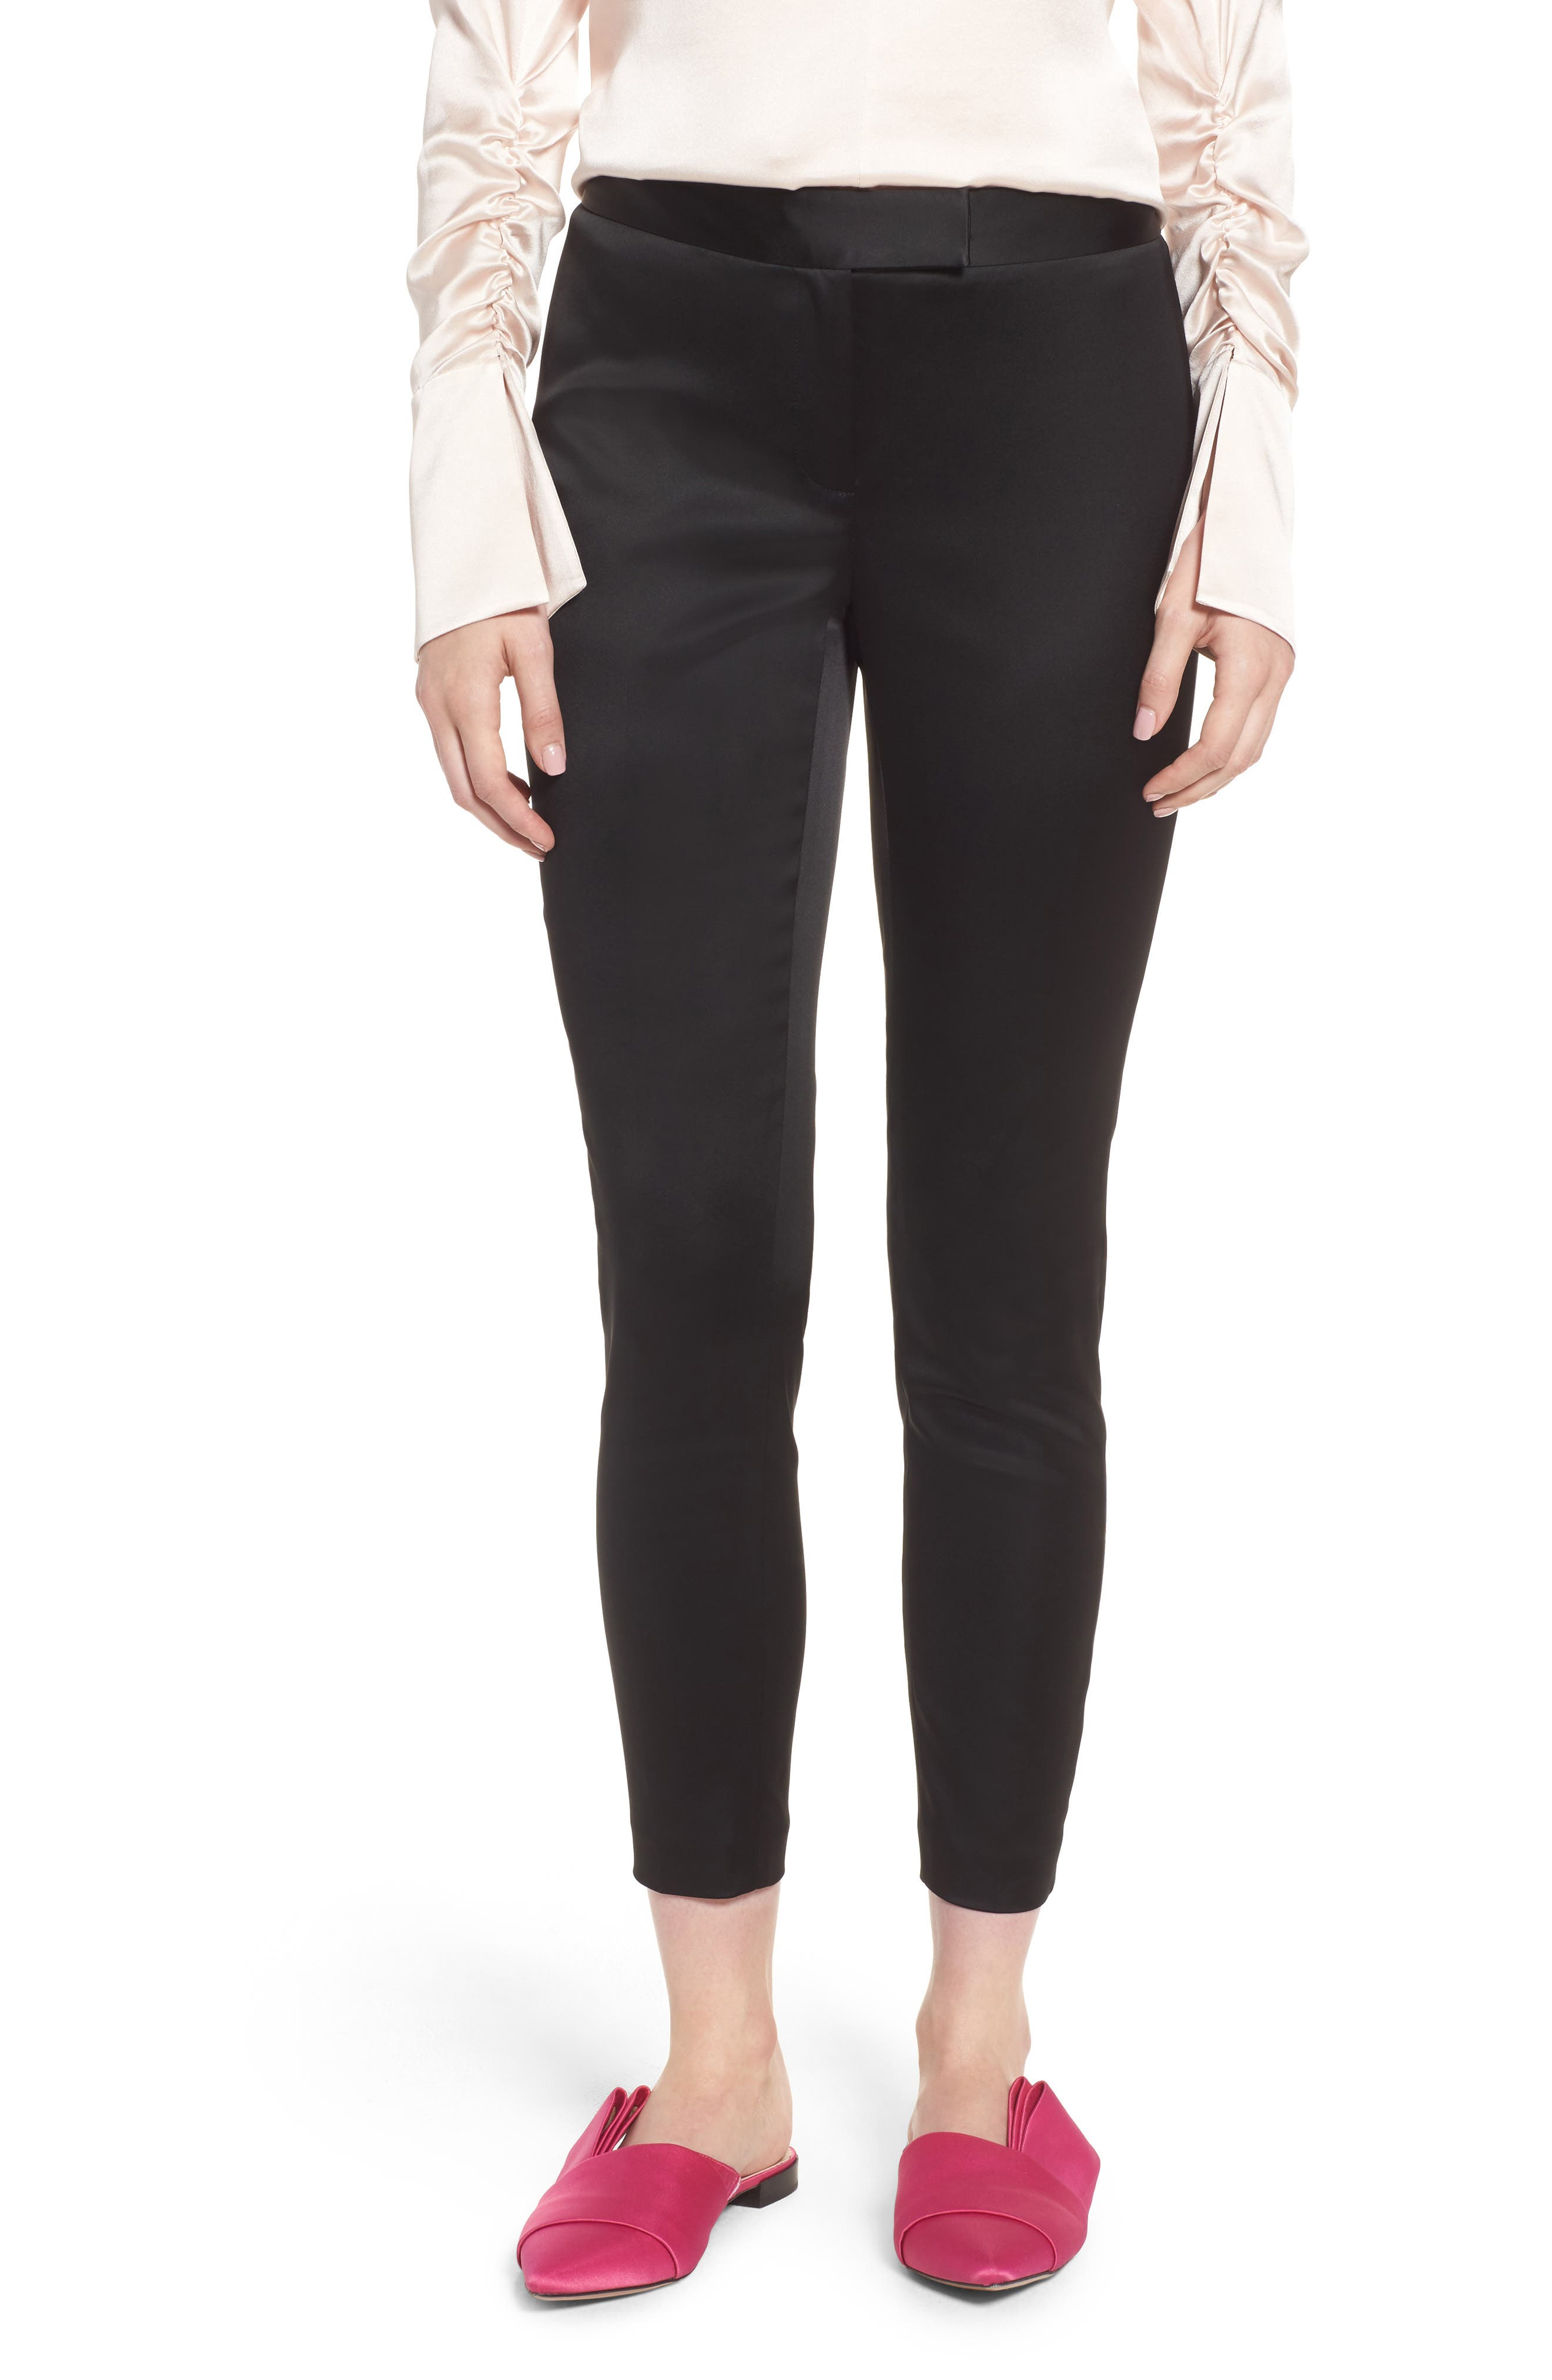 Alternate Image 1 Selected - Lewit Stretch Satin Skinny Trousers